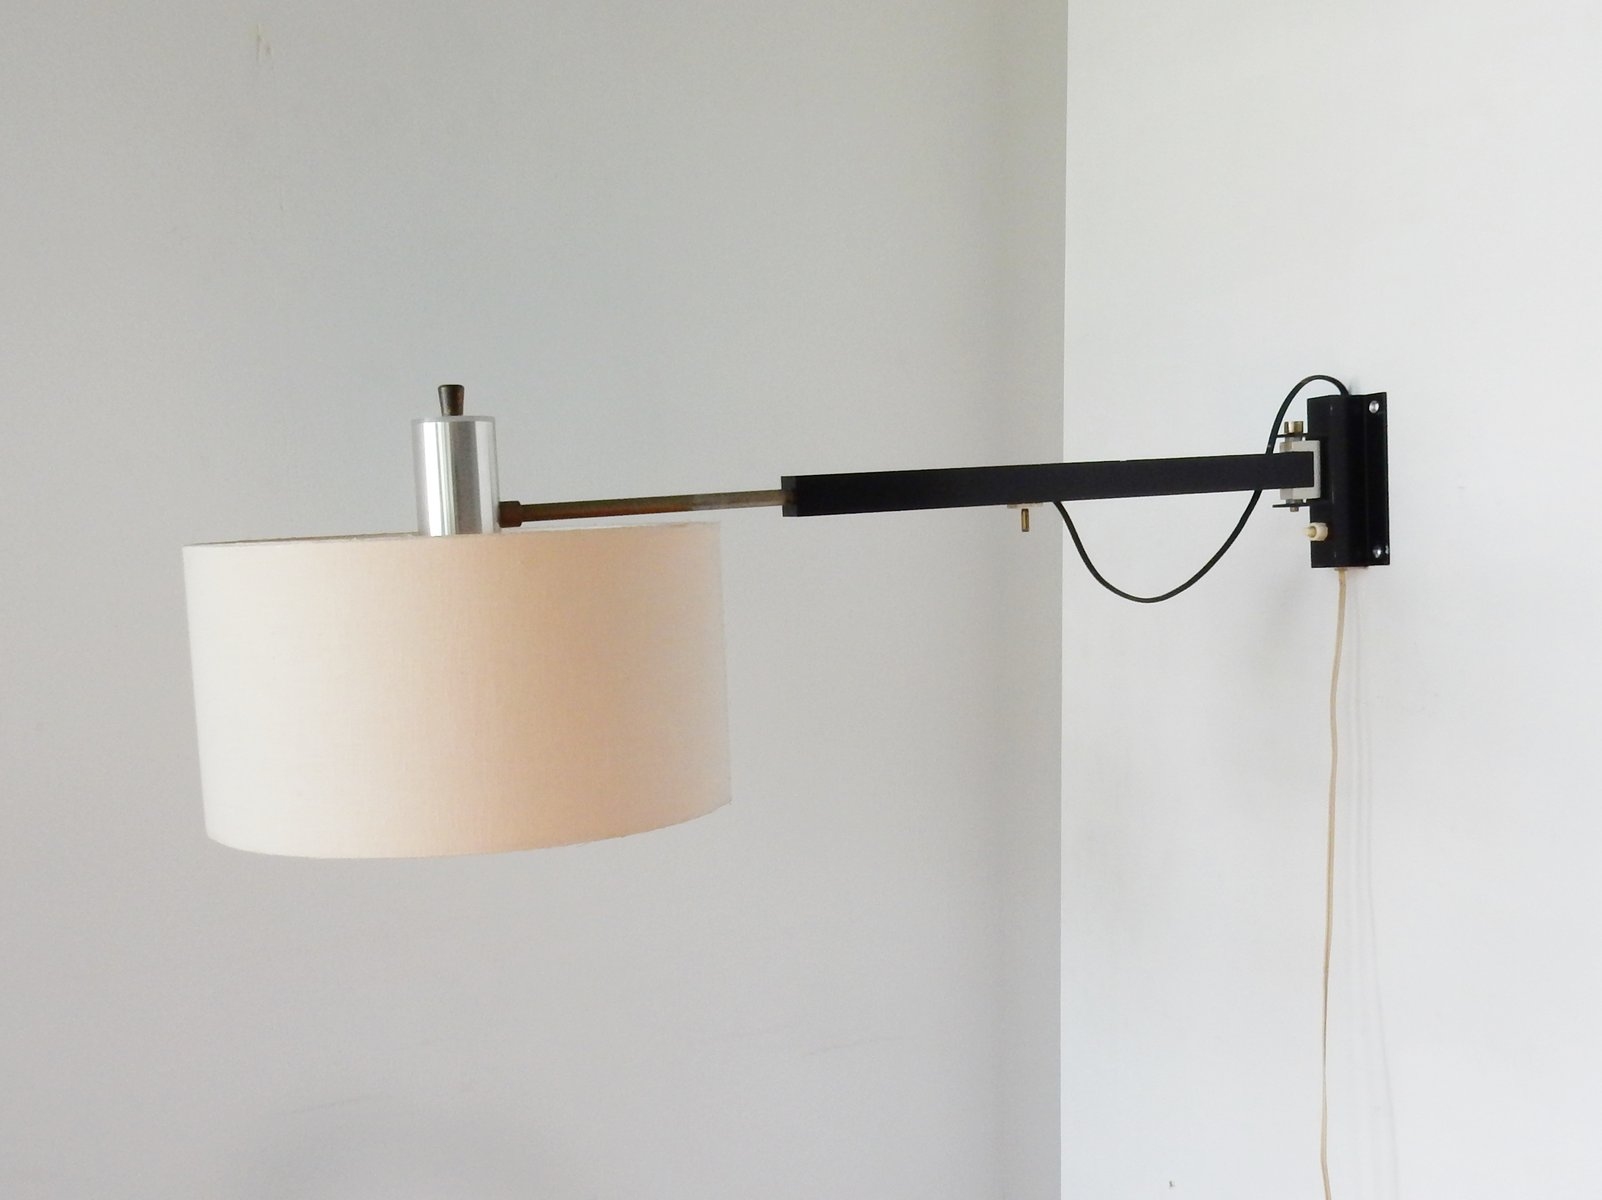 Wall Mounted Extendable Lamp : Vintage Extendable Swiveling Wall Lamp, 1960s for sale at Pamono